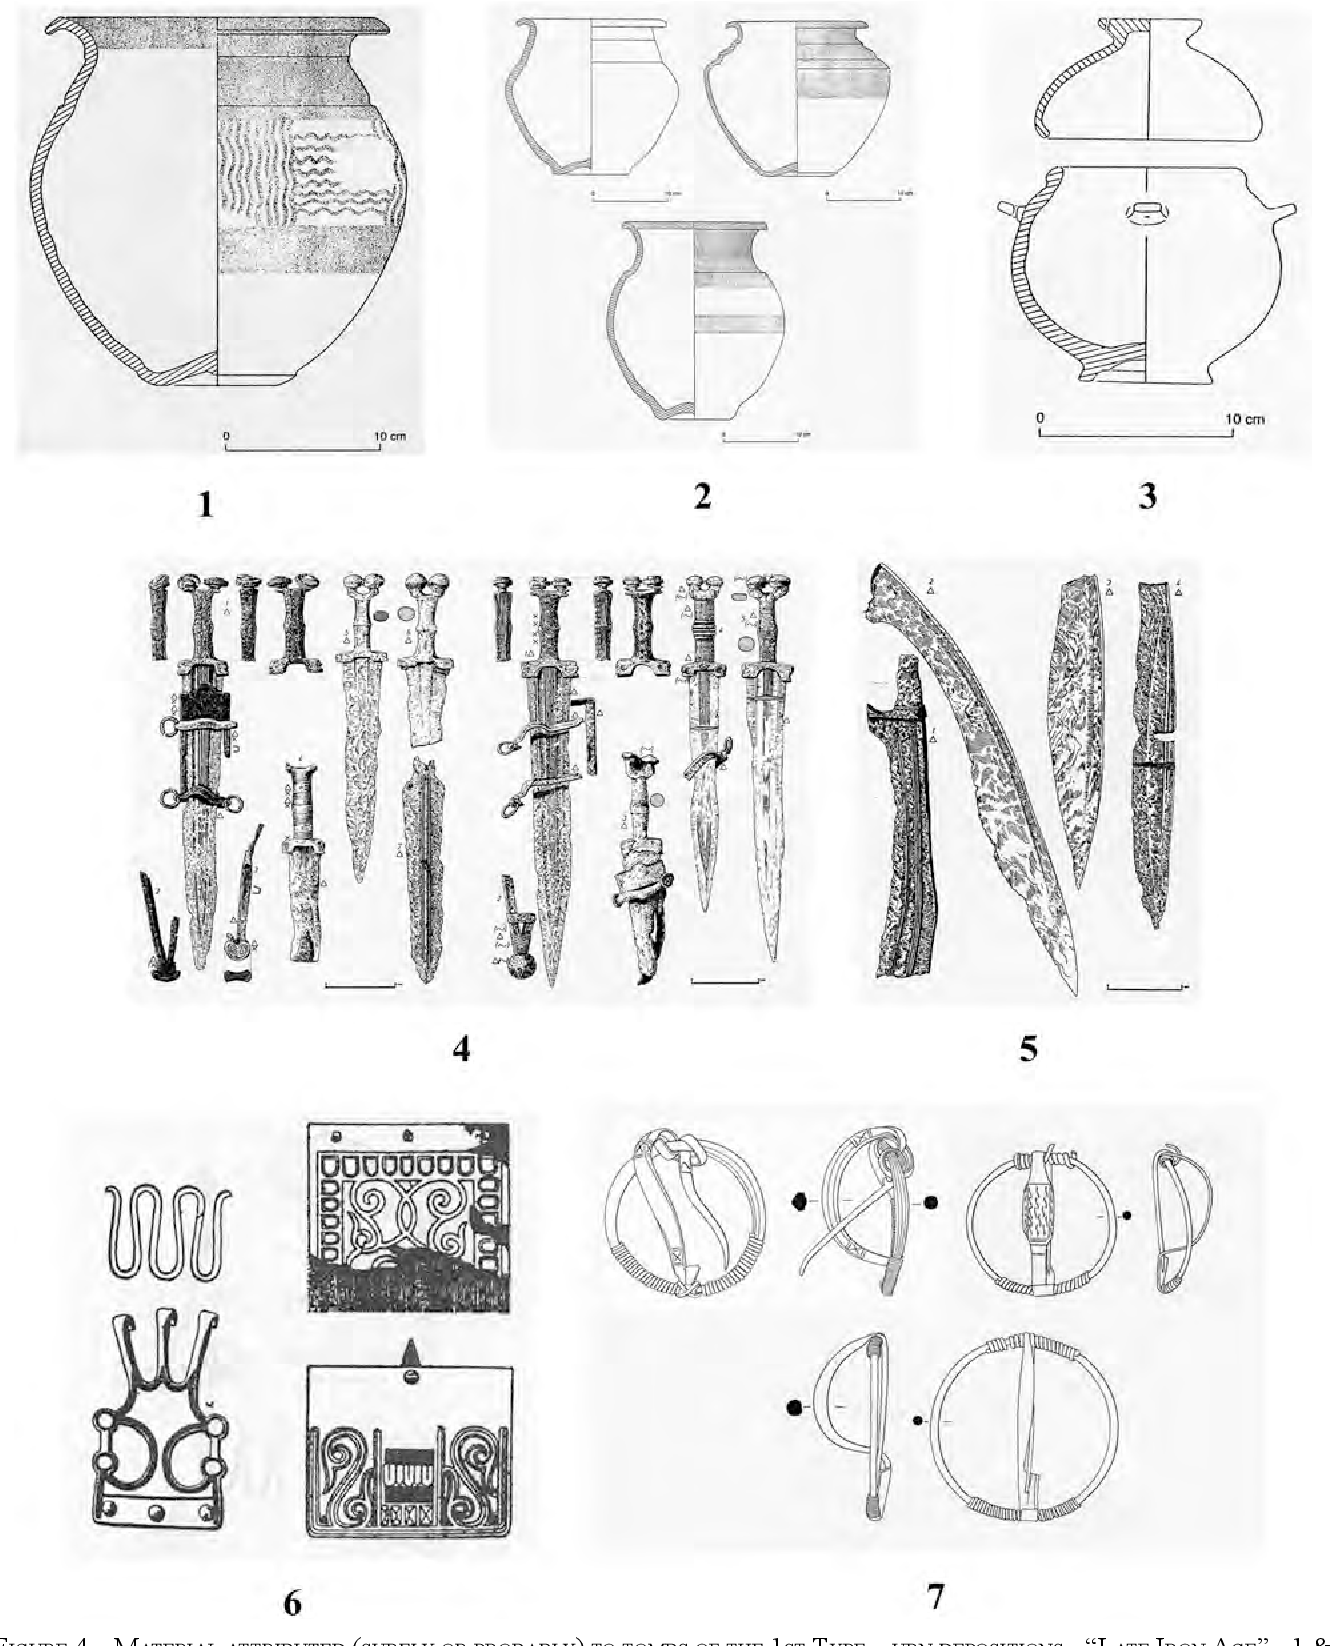 Figure 4 material attributed (surely or probably) to tombs oF tHe 1st type urn depositions - late iron age - 1 & 2 bi-conic urns (aFter Frankenstein, 1997); 3 eared urn (idem); 4 antennae swords and daggers (aFter scHule, 1969, adapted in arruda, 1999-2000); 5 Falcatae (idem); 6 late belt clasps (oF tHe late celtic and iberian types) (aFter almeida & Ferreira, 1962); late Hispanic annular Fibulae (aFter ponte, 1985).